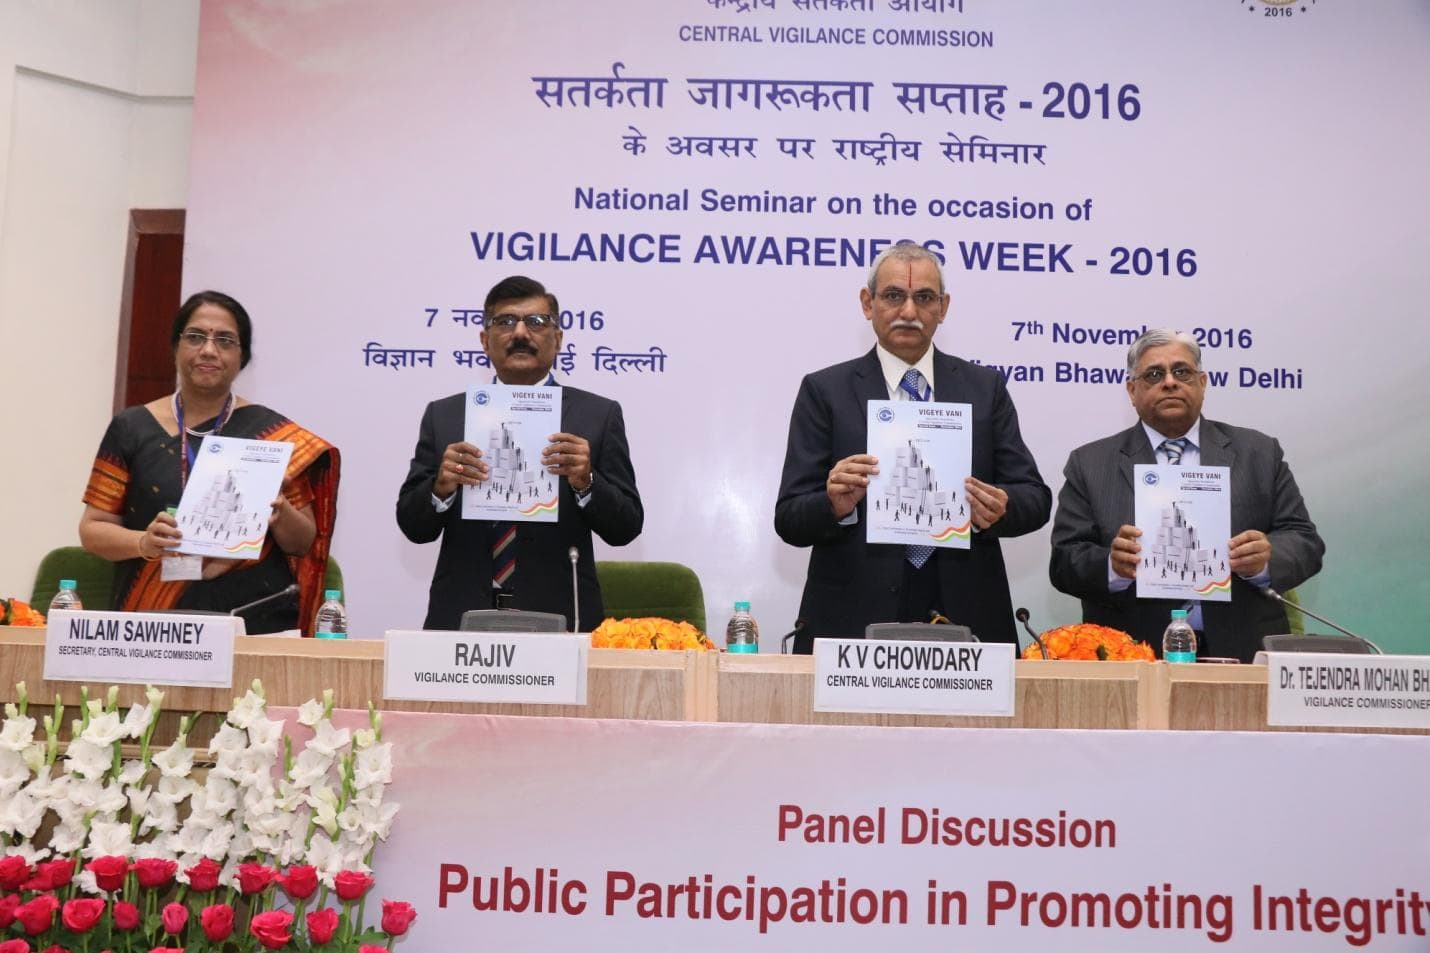 National Seminar VIGILANCE AWARENESS WEEK-2016 photo 7